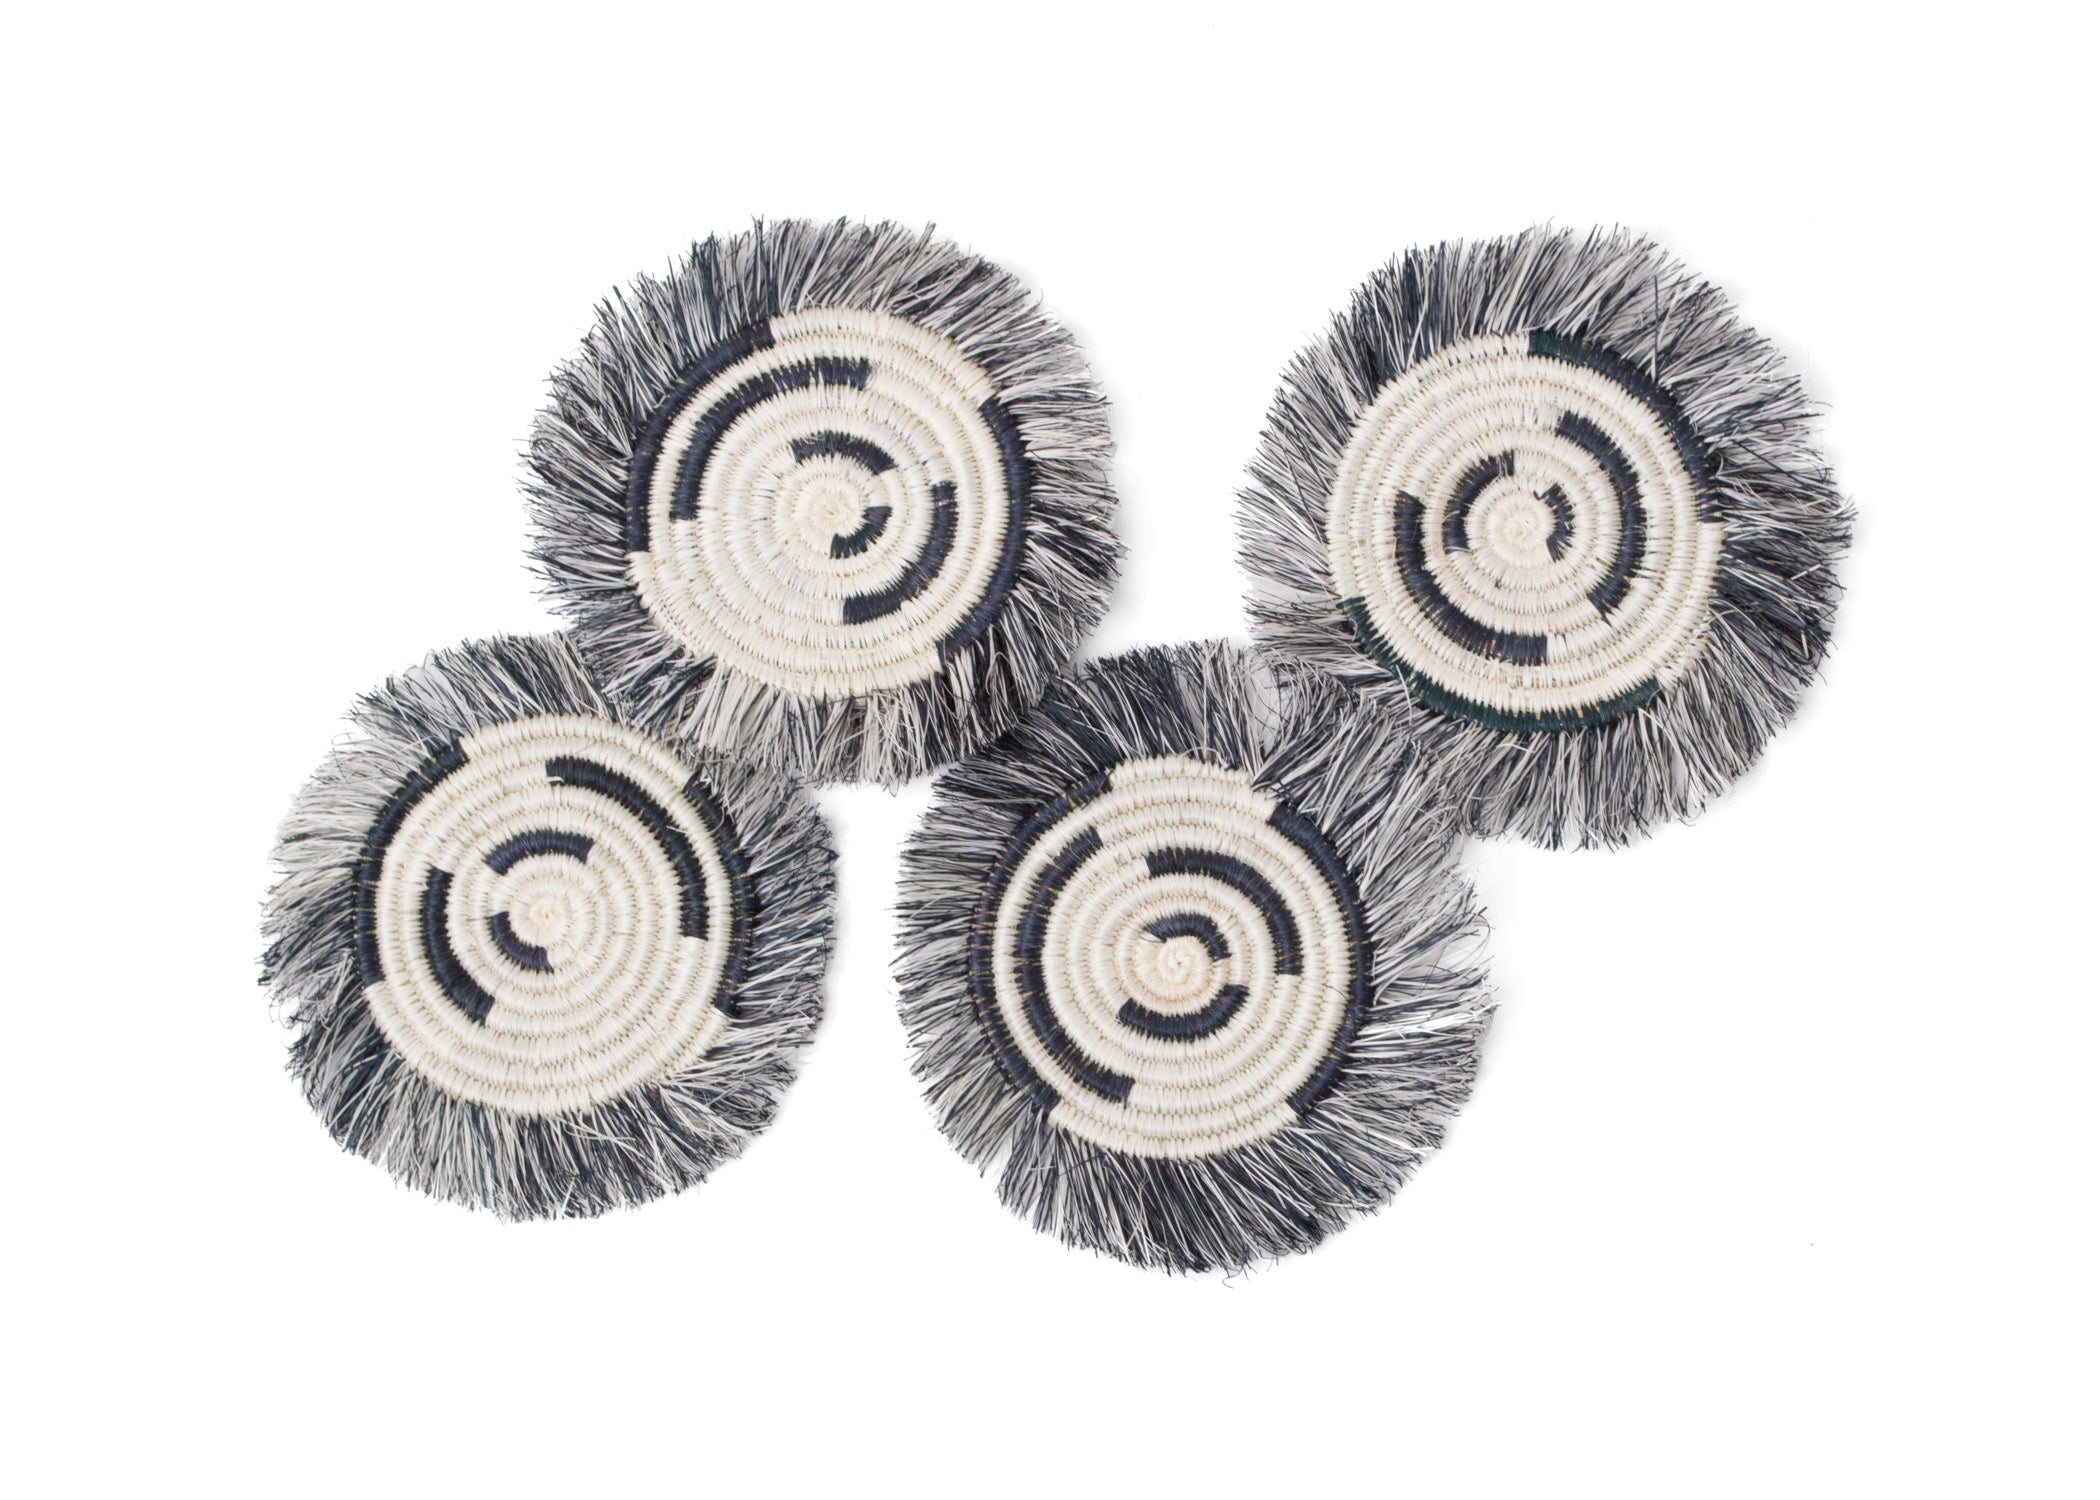 Fringed Black + White Geo Coasters, Set of 4 - KAZI - Artisan made high quality home decor and wall art